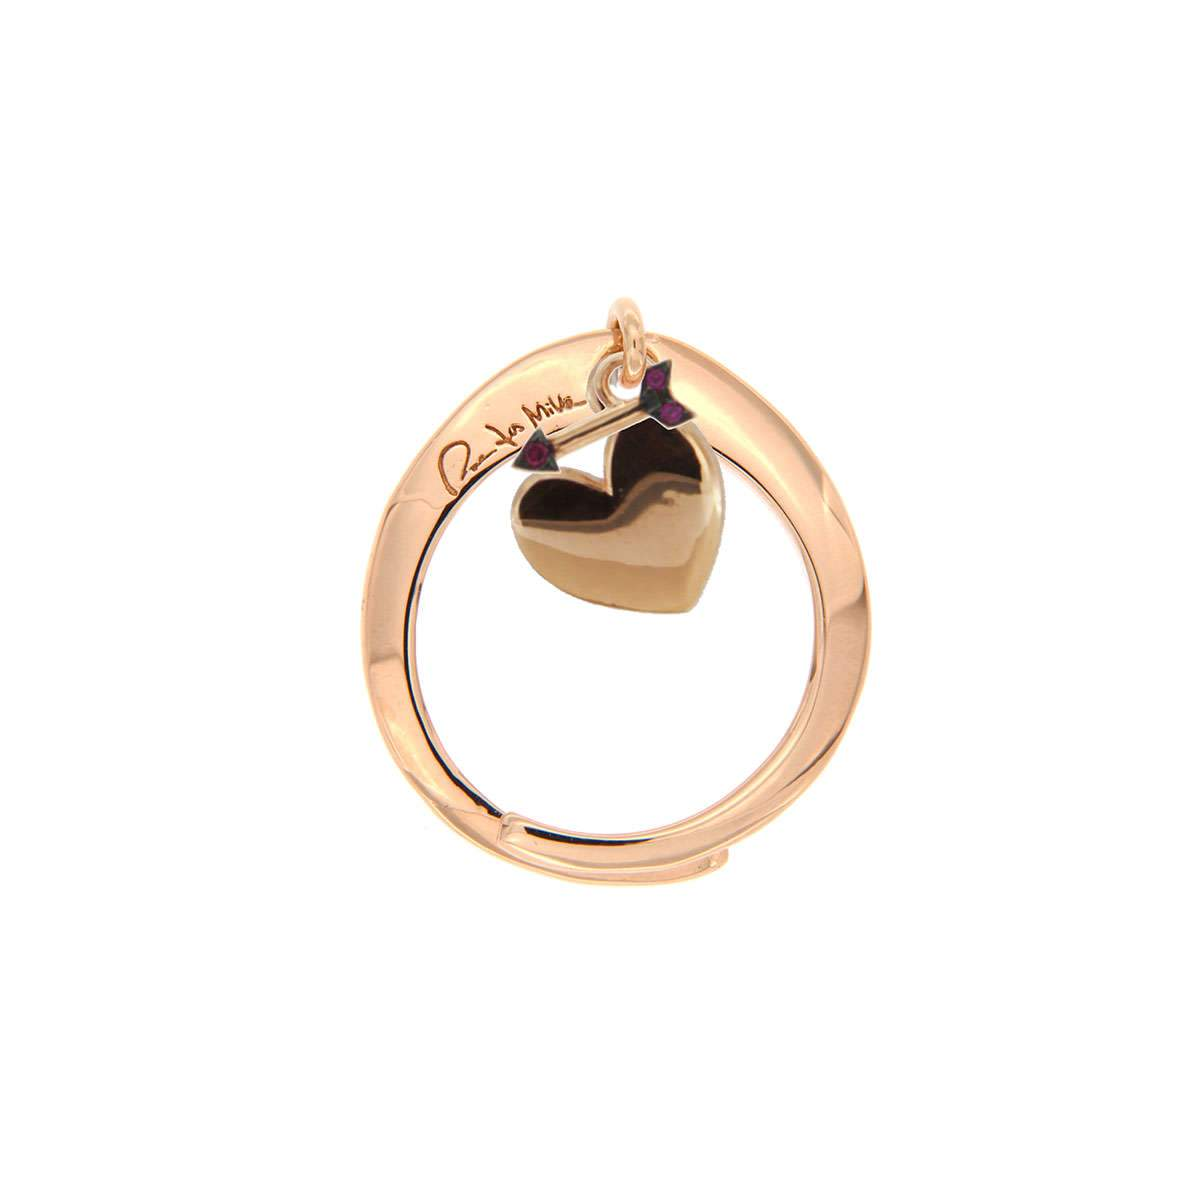 Rings - Double Rigid Ring with Heart/Arrow Pendant - 1 | Rue des Mille